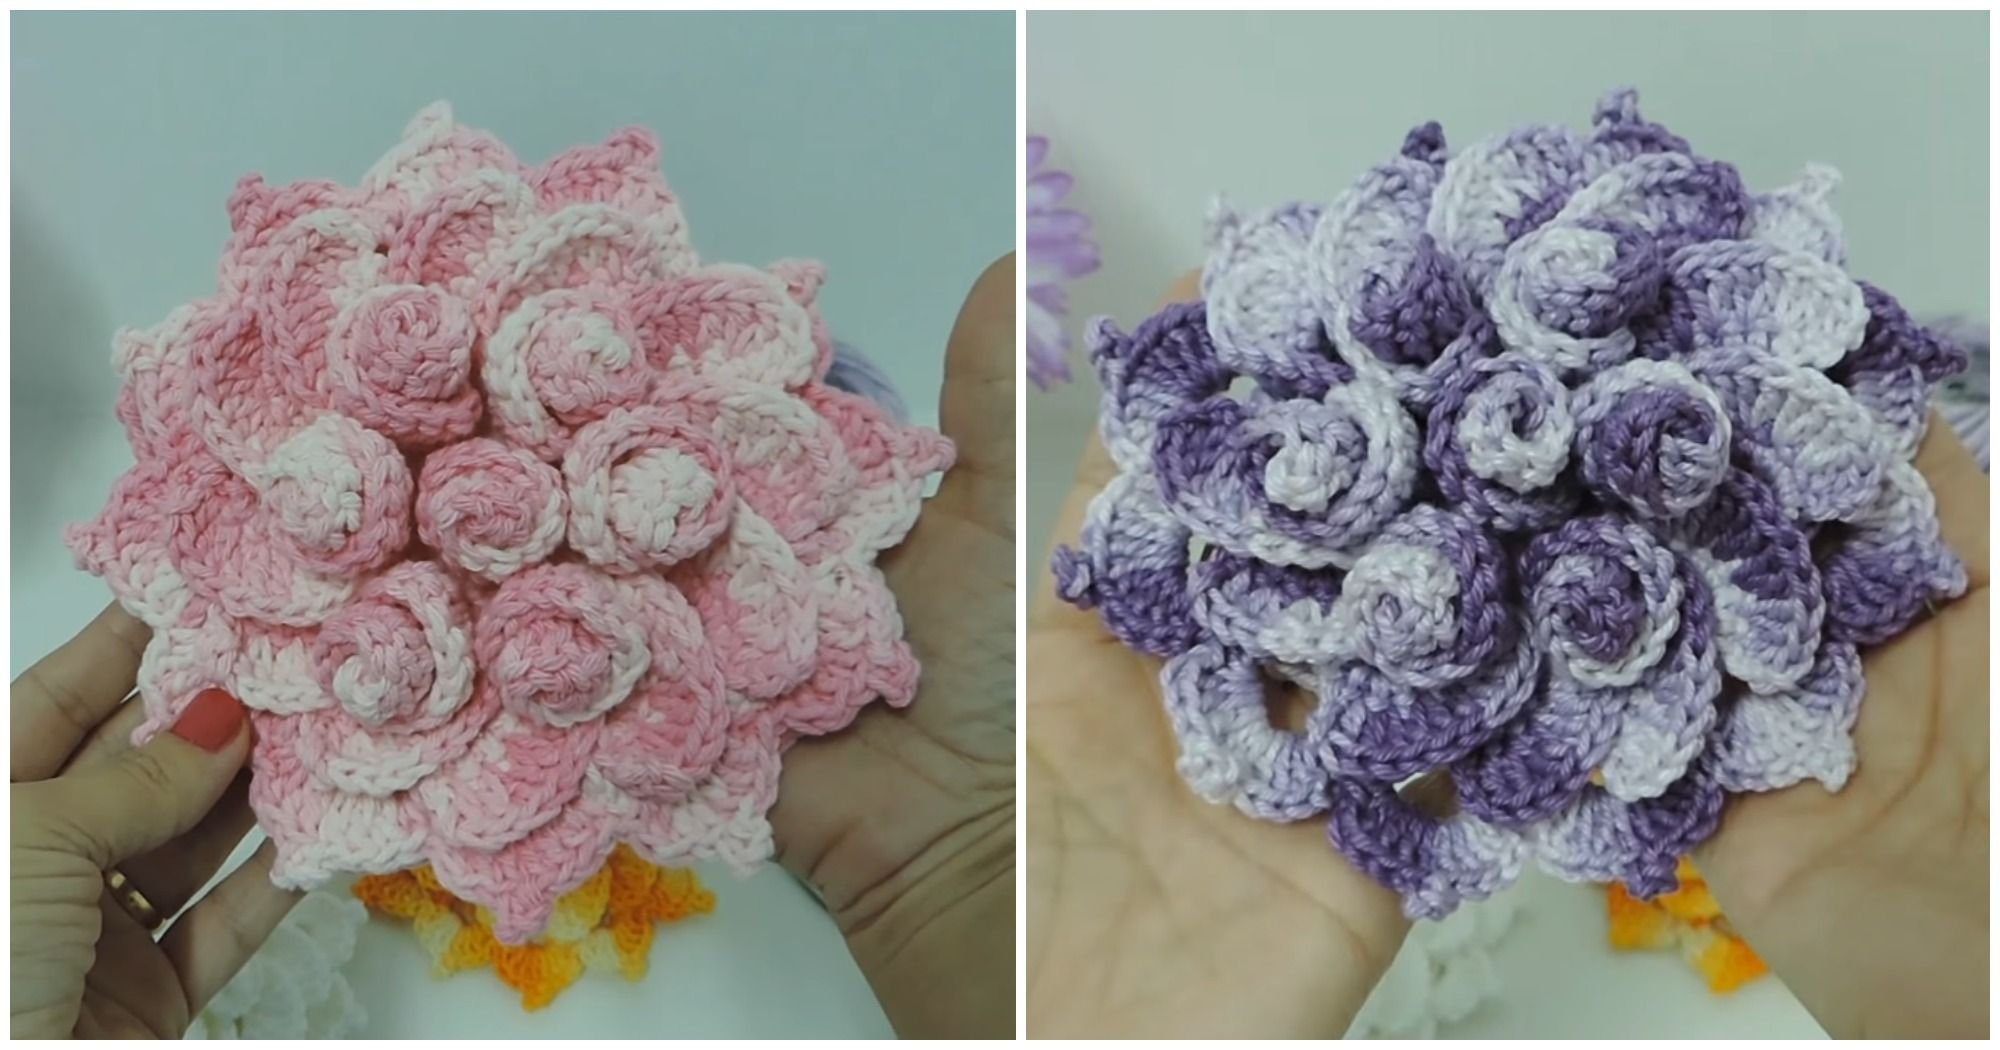 Crochet May Flower With Images Crochet Crochet Flowers